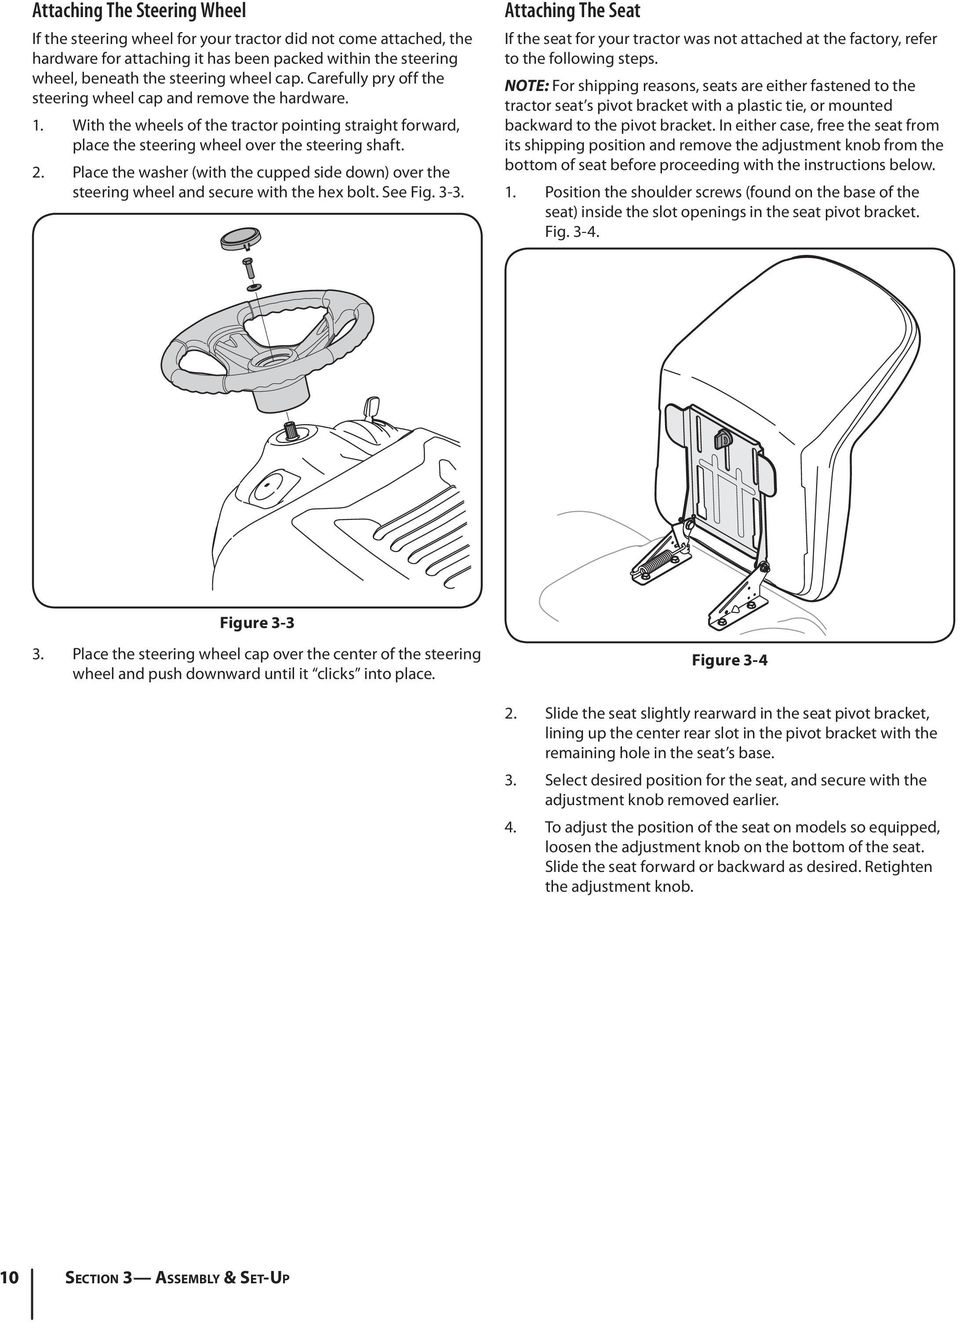 Place the washer (with the cupped side down) over the steering wheel and secure with the hex bolt. See Fig. 3-3.